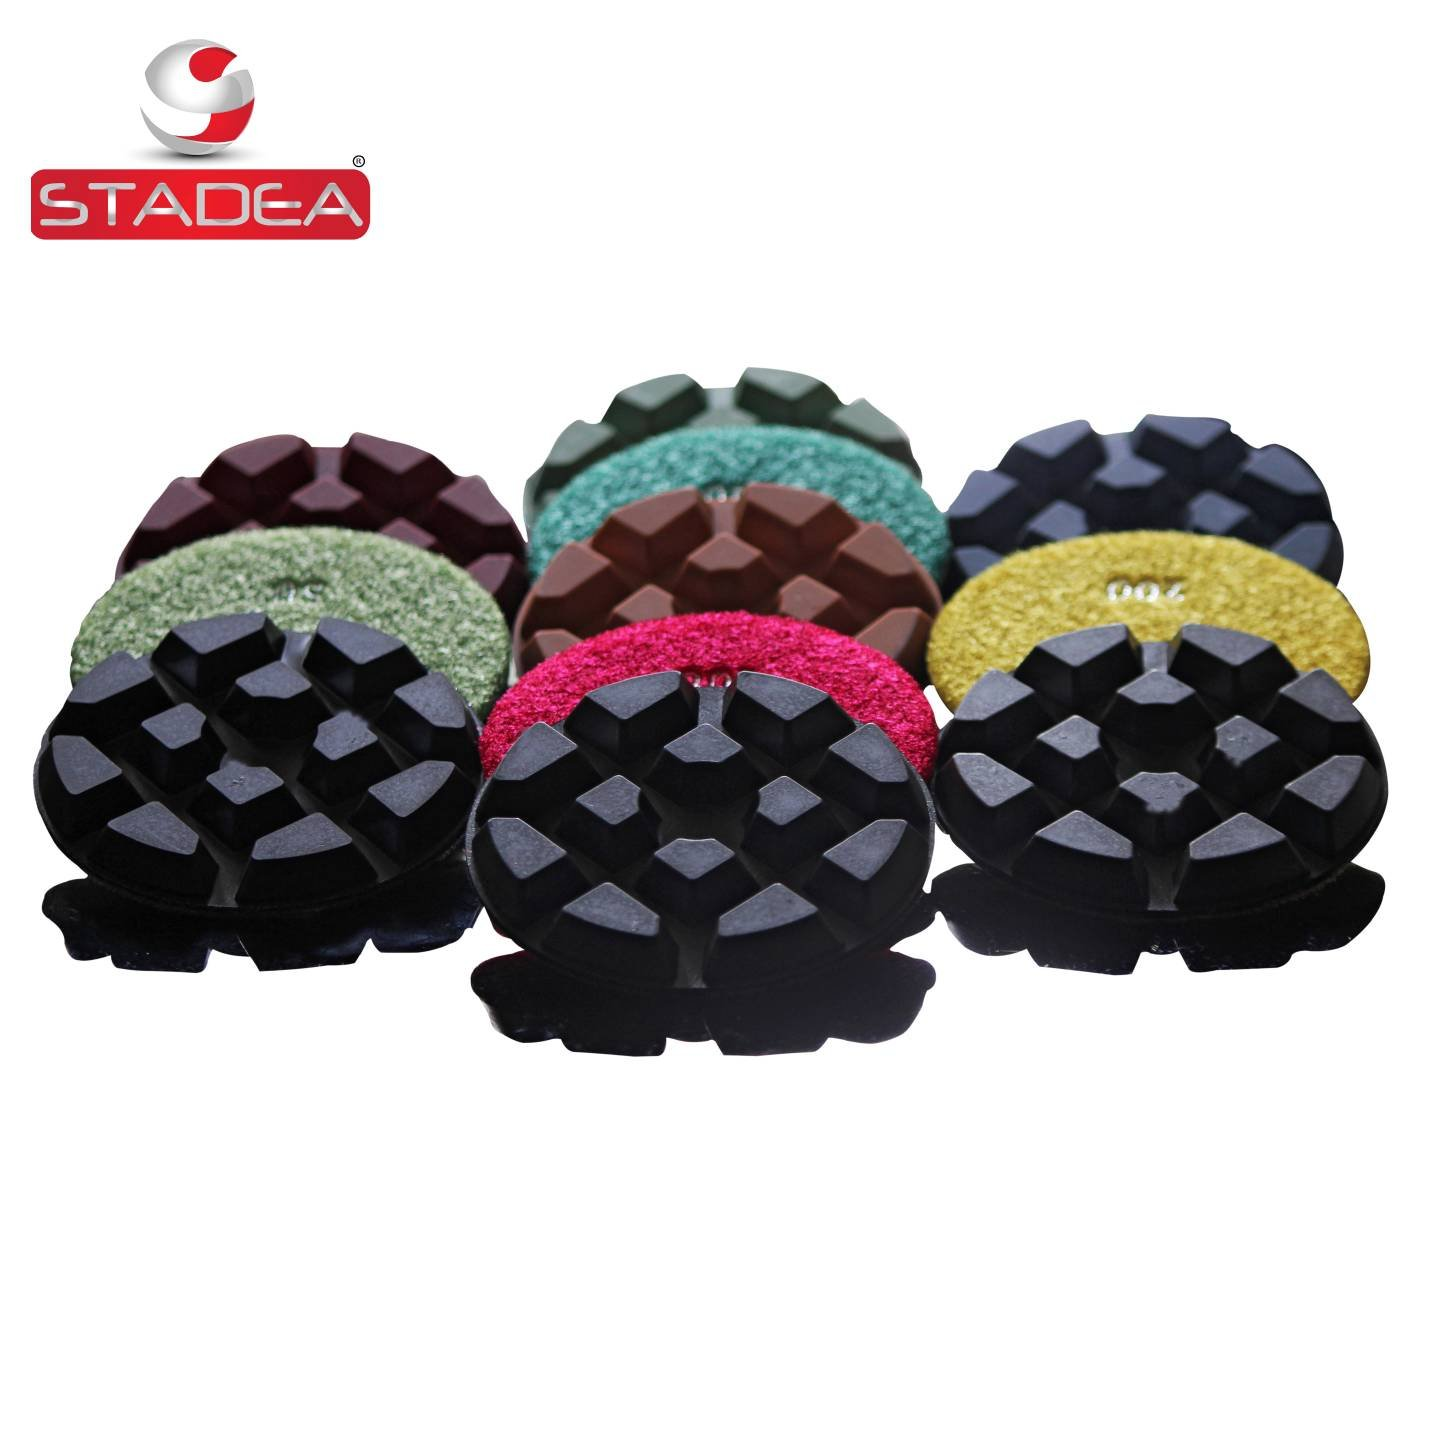 diamond floor polishing pads for floor concrete marble polishing - Set of 7 pads by Stadea